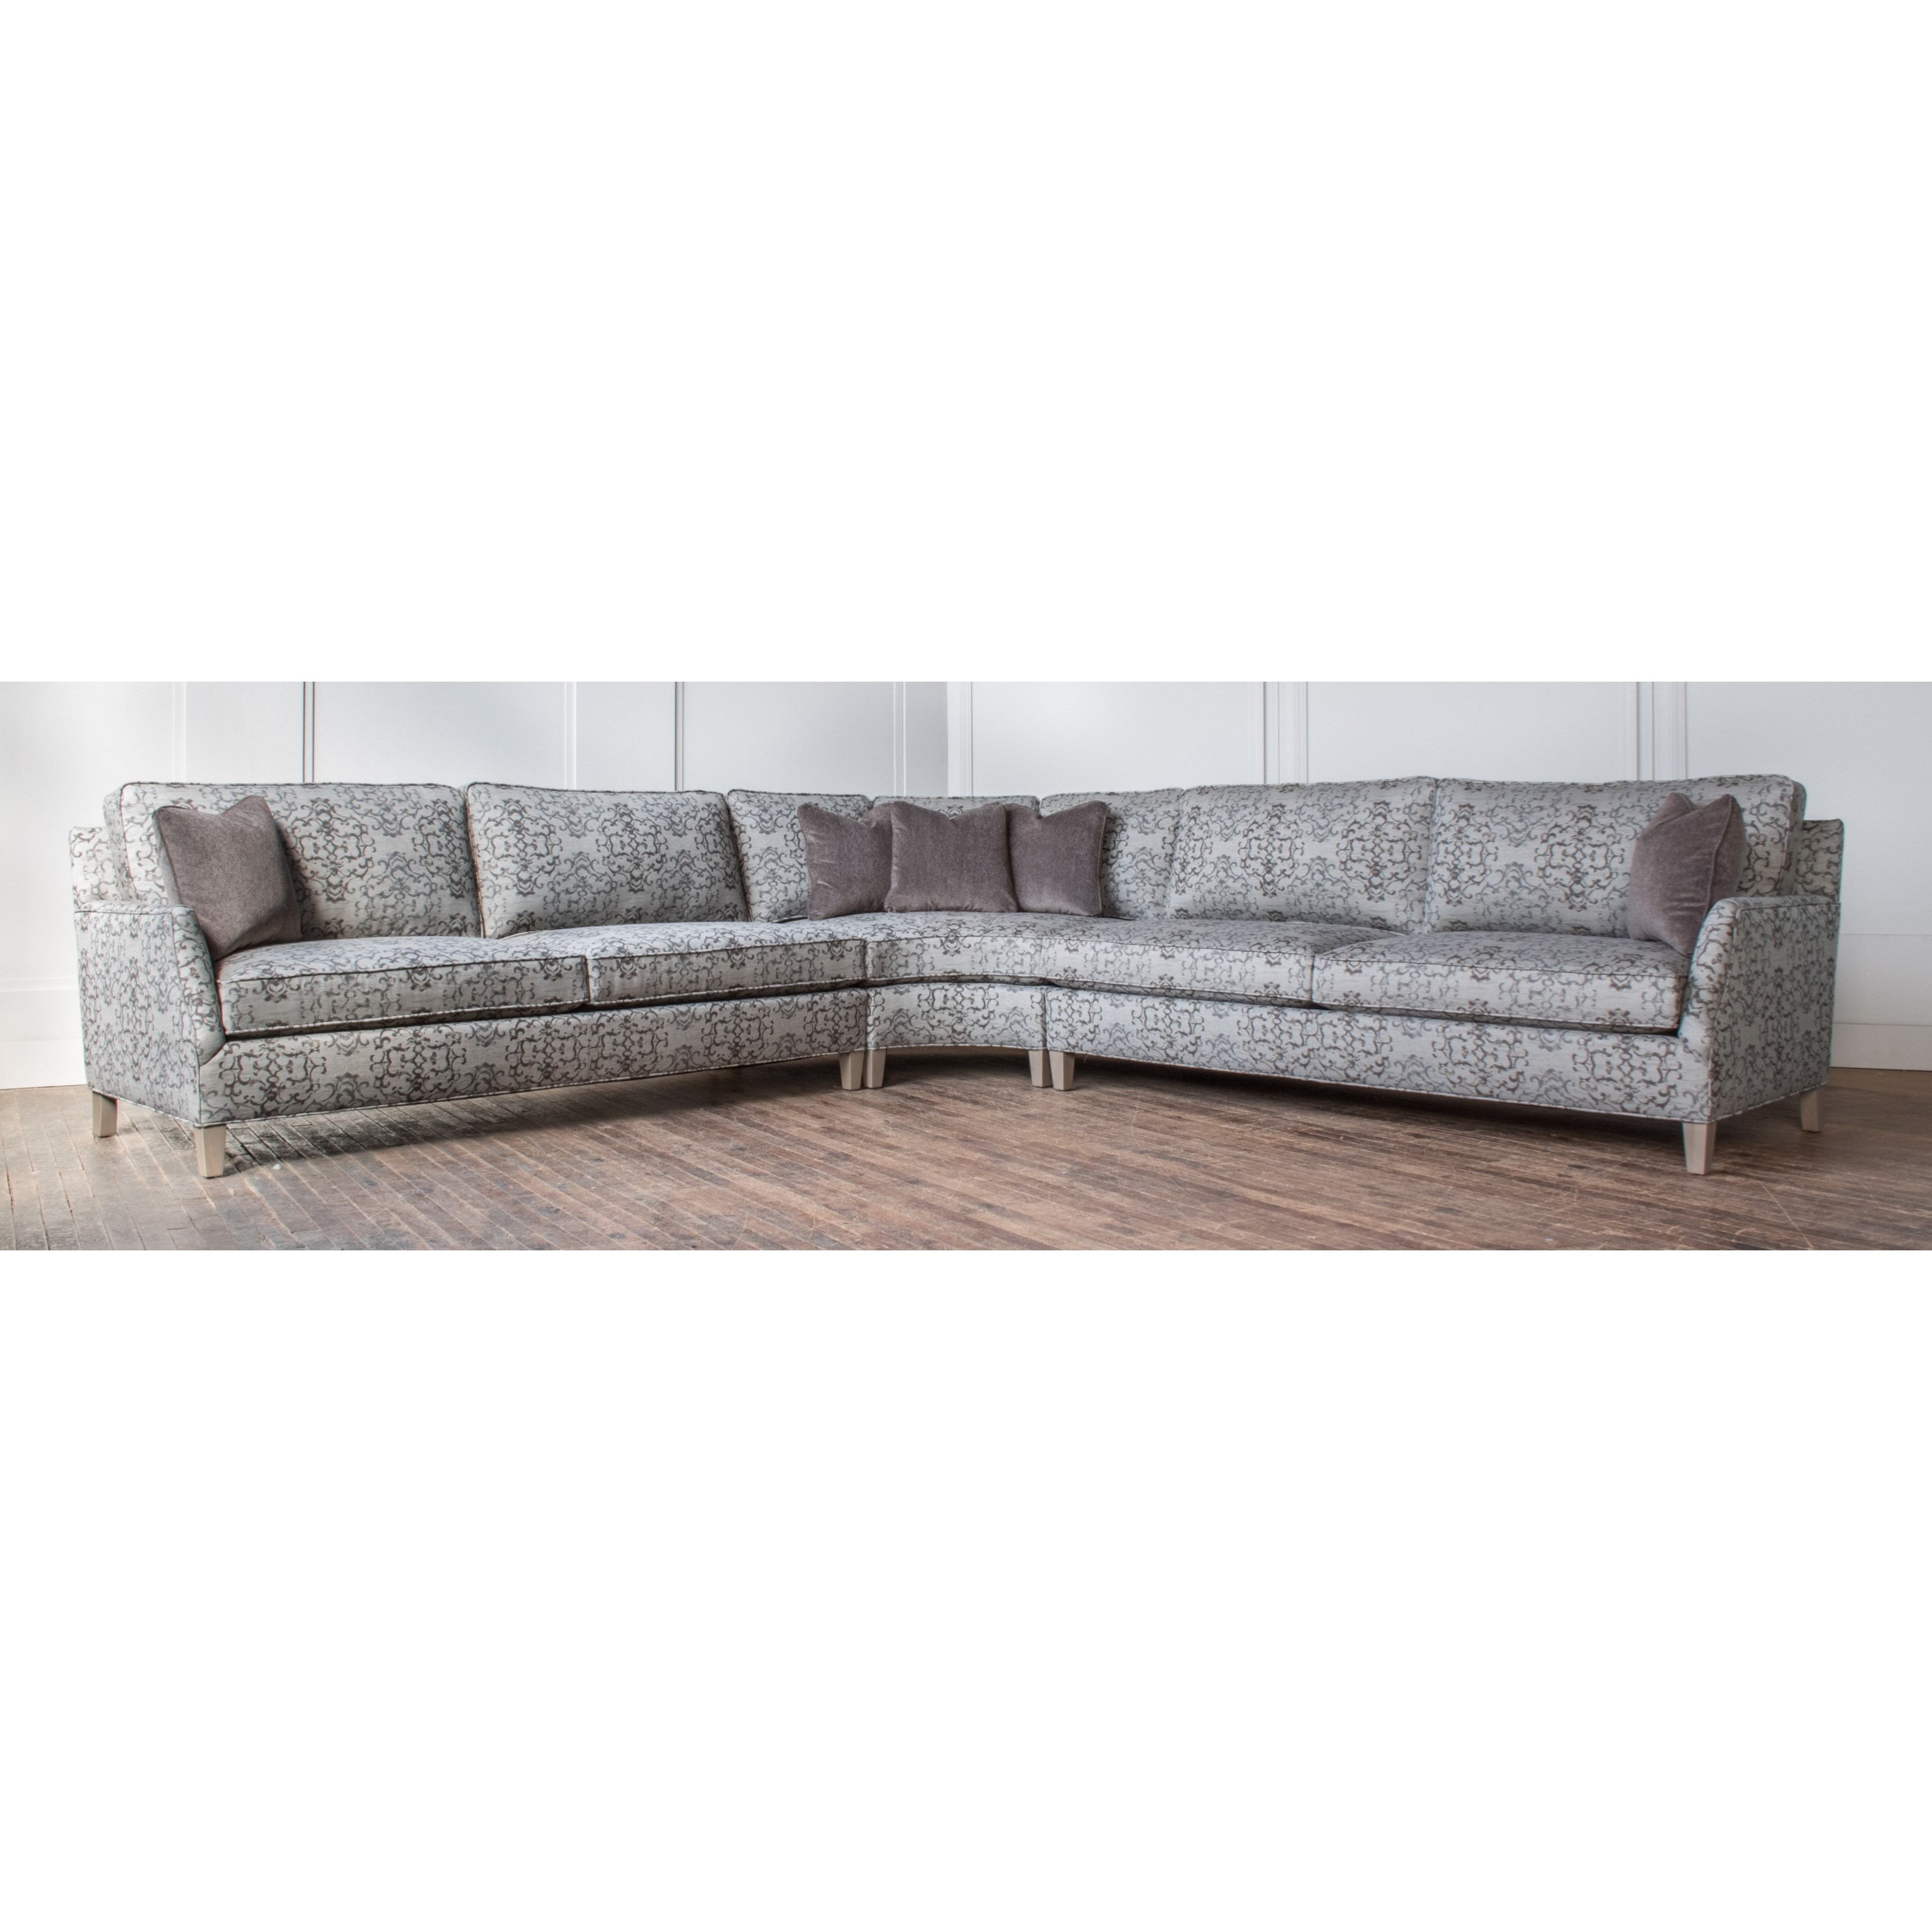 Wondrous Hallagan Furniture Brighton Customizable Curved Sectional Short Links Chair Design For Home Short Linksinfo